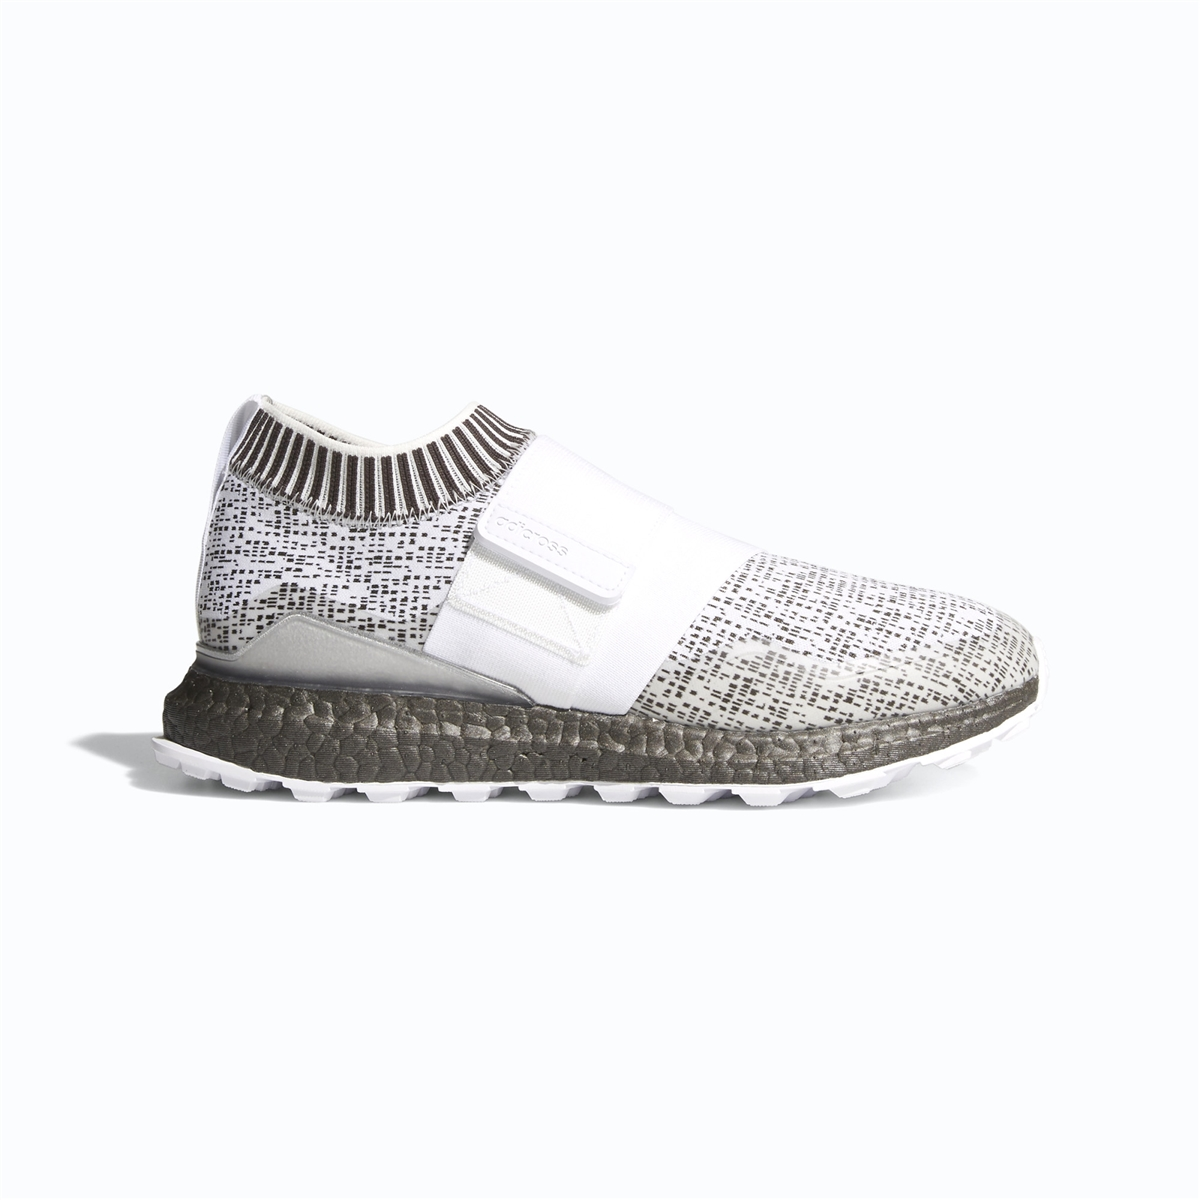 Adidas Crossknit 2 0 Cloud White Cloud White Boost Trace Grey